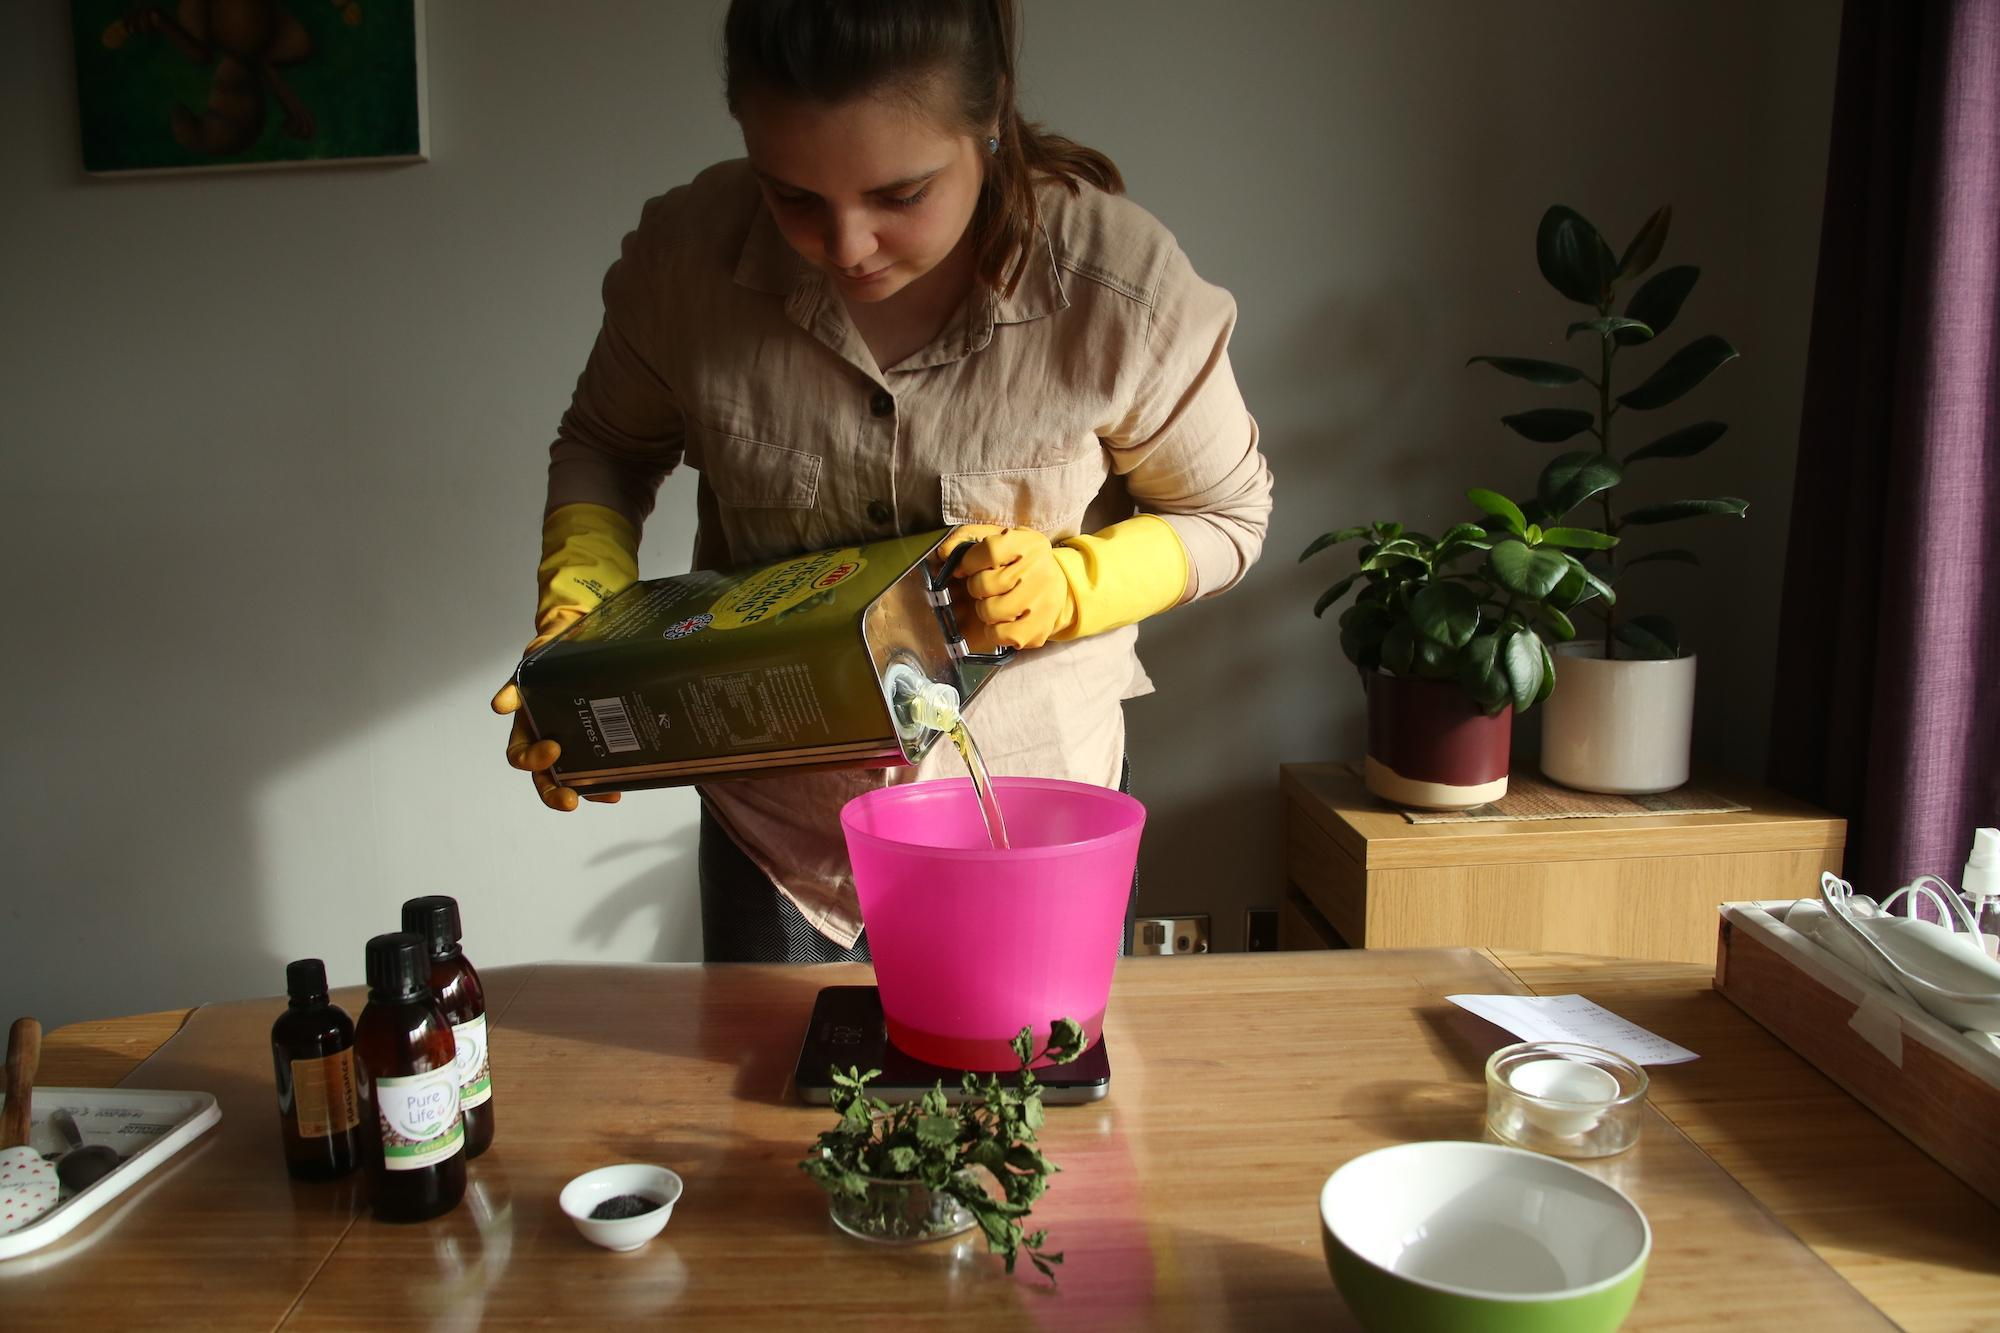 Nadia pouring soap ingredients into a bowl